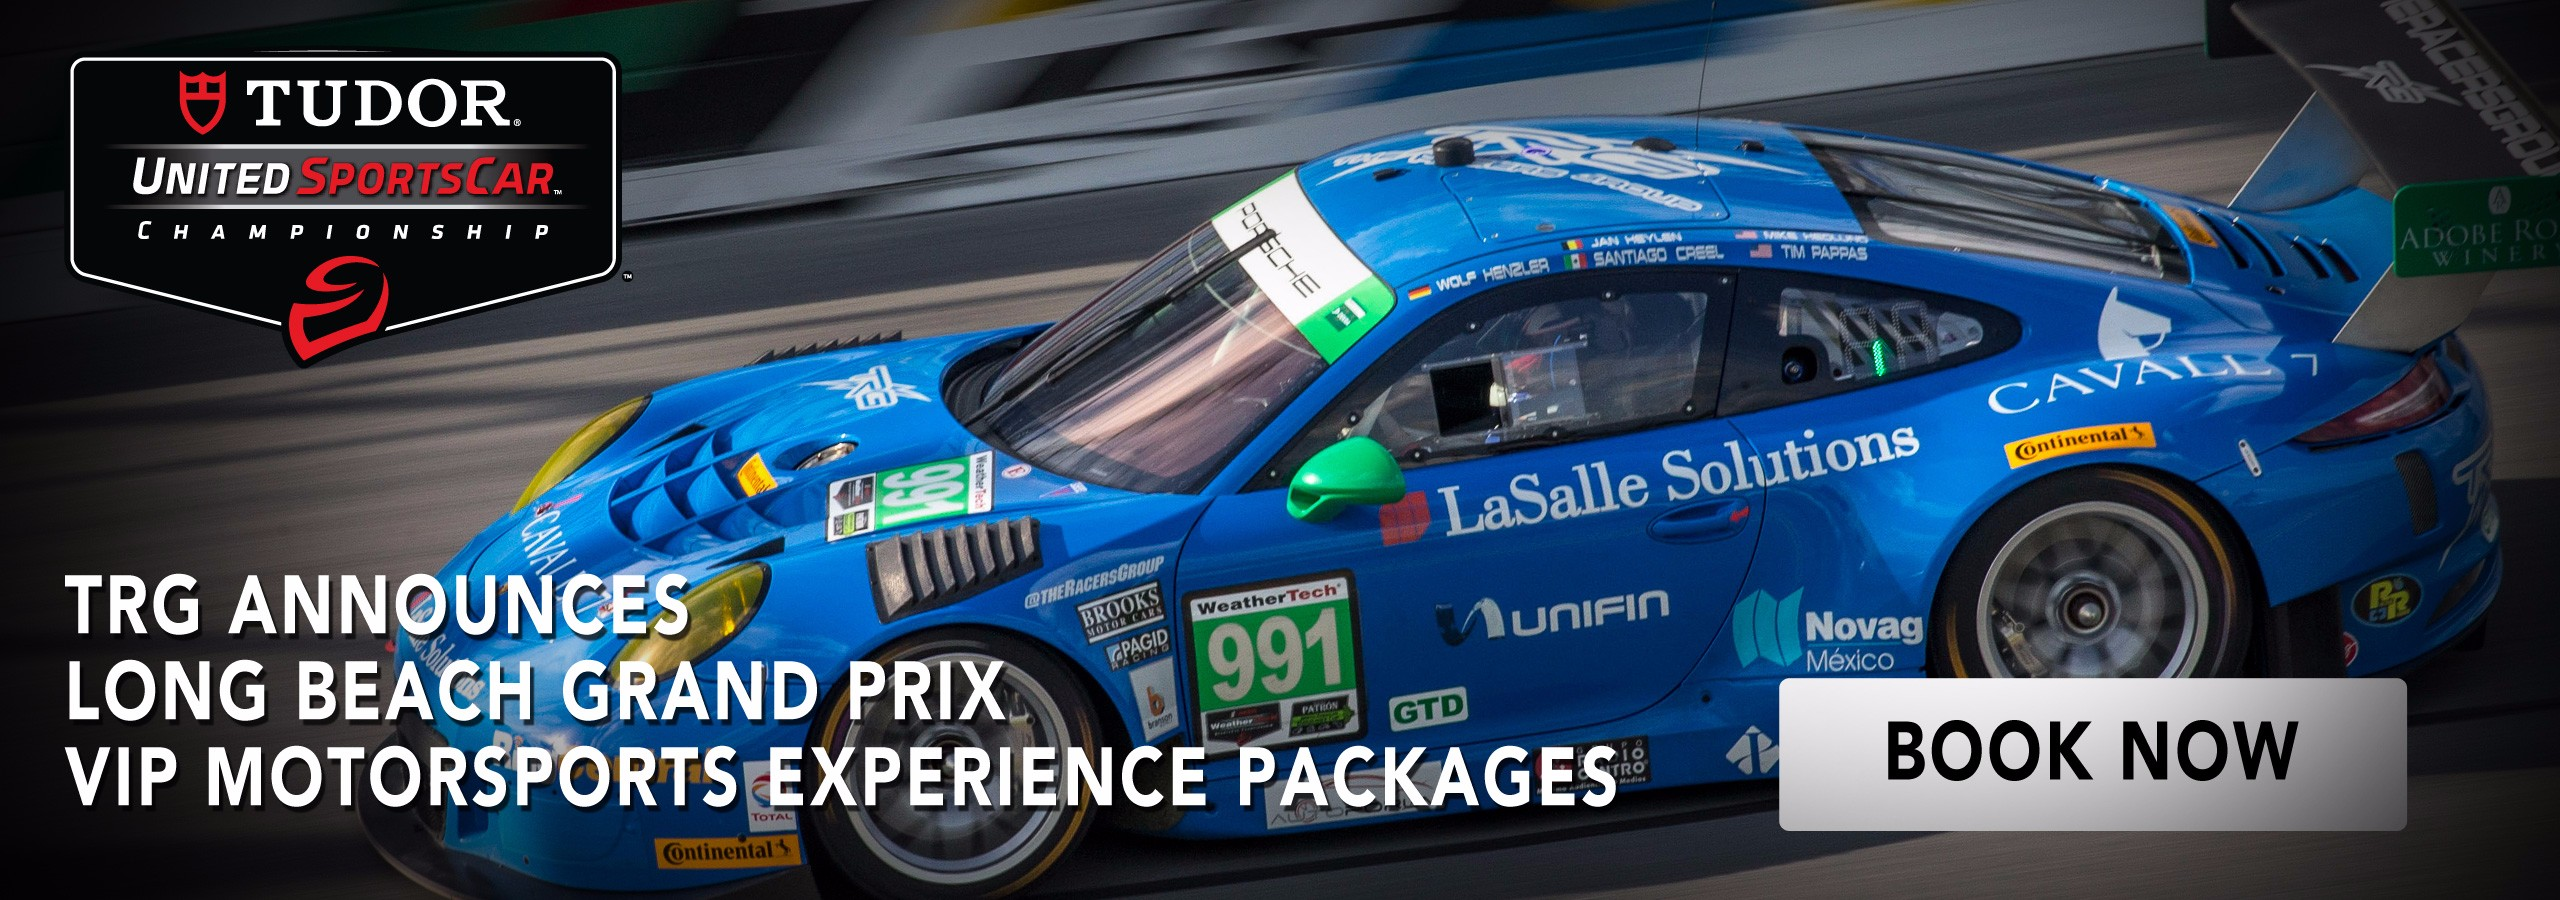 TRG Announces Long Beach Grand Prix Motorsports Experience Packages